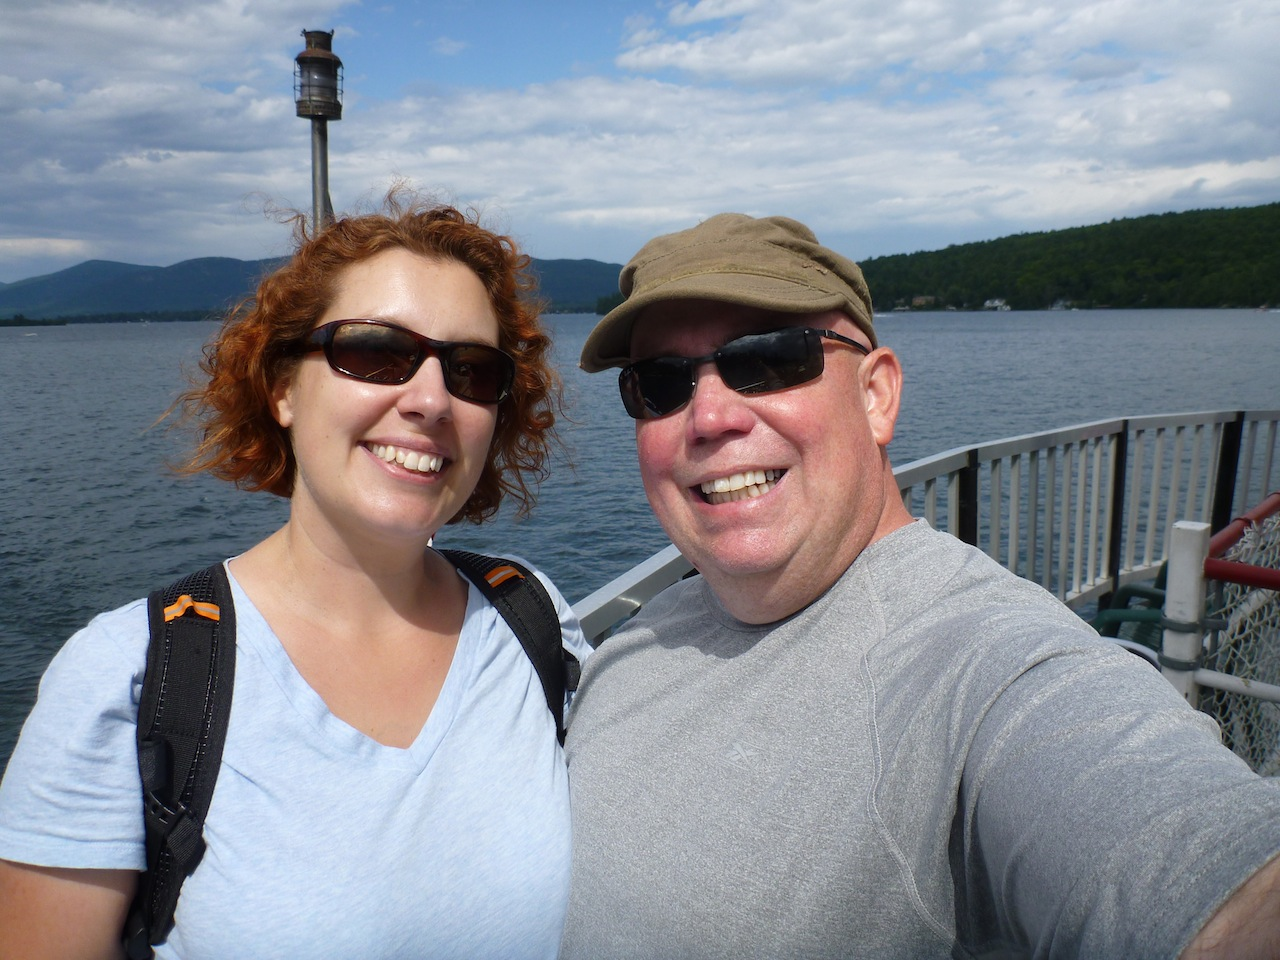 Here We Are On The Minnie Ha Ha Steam Boat Tour